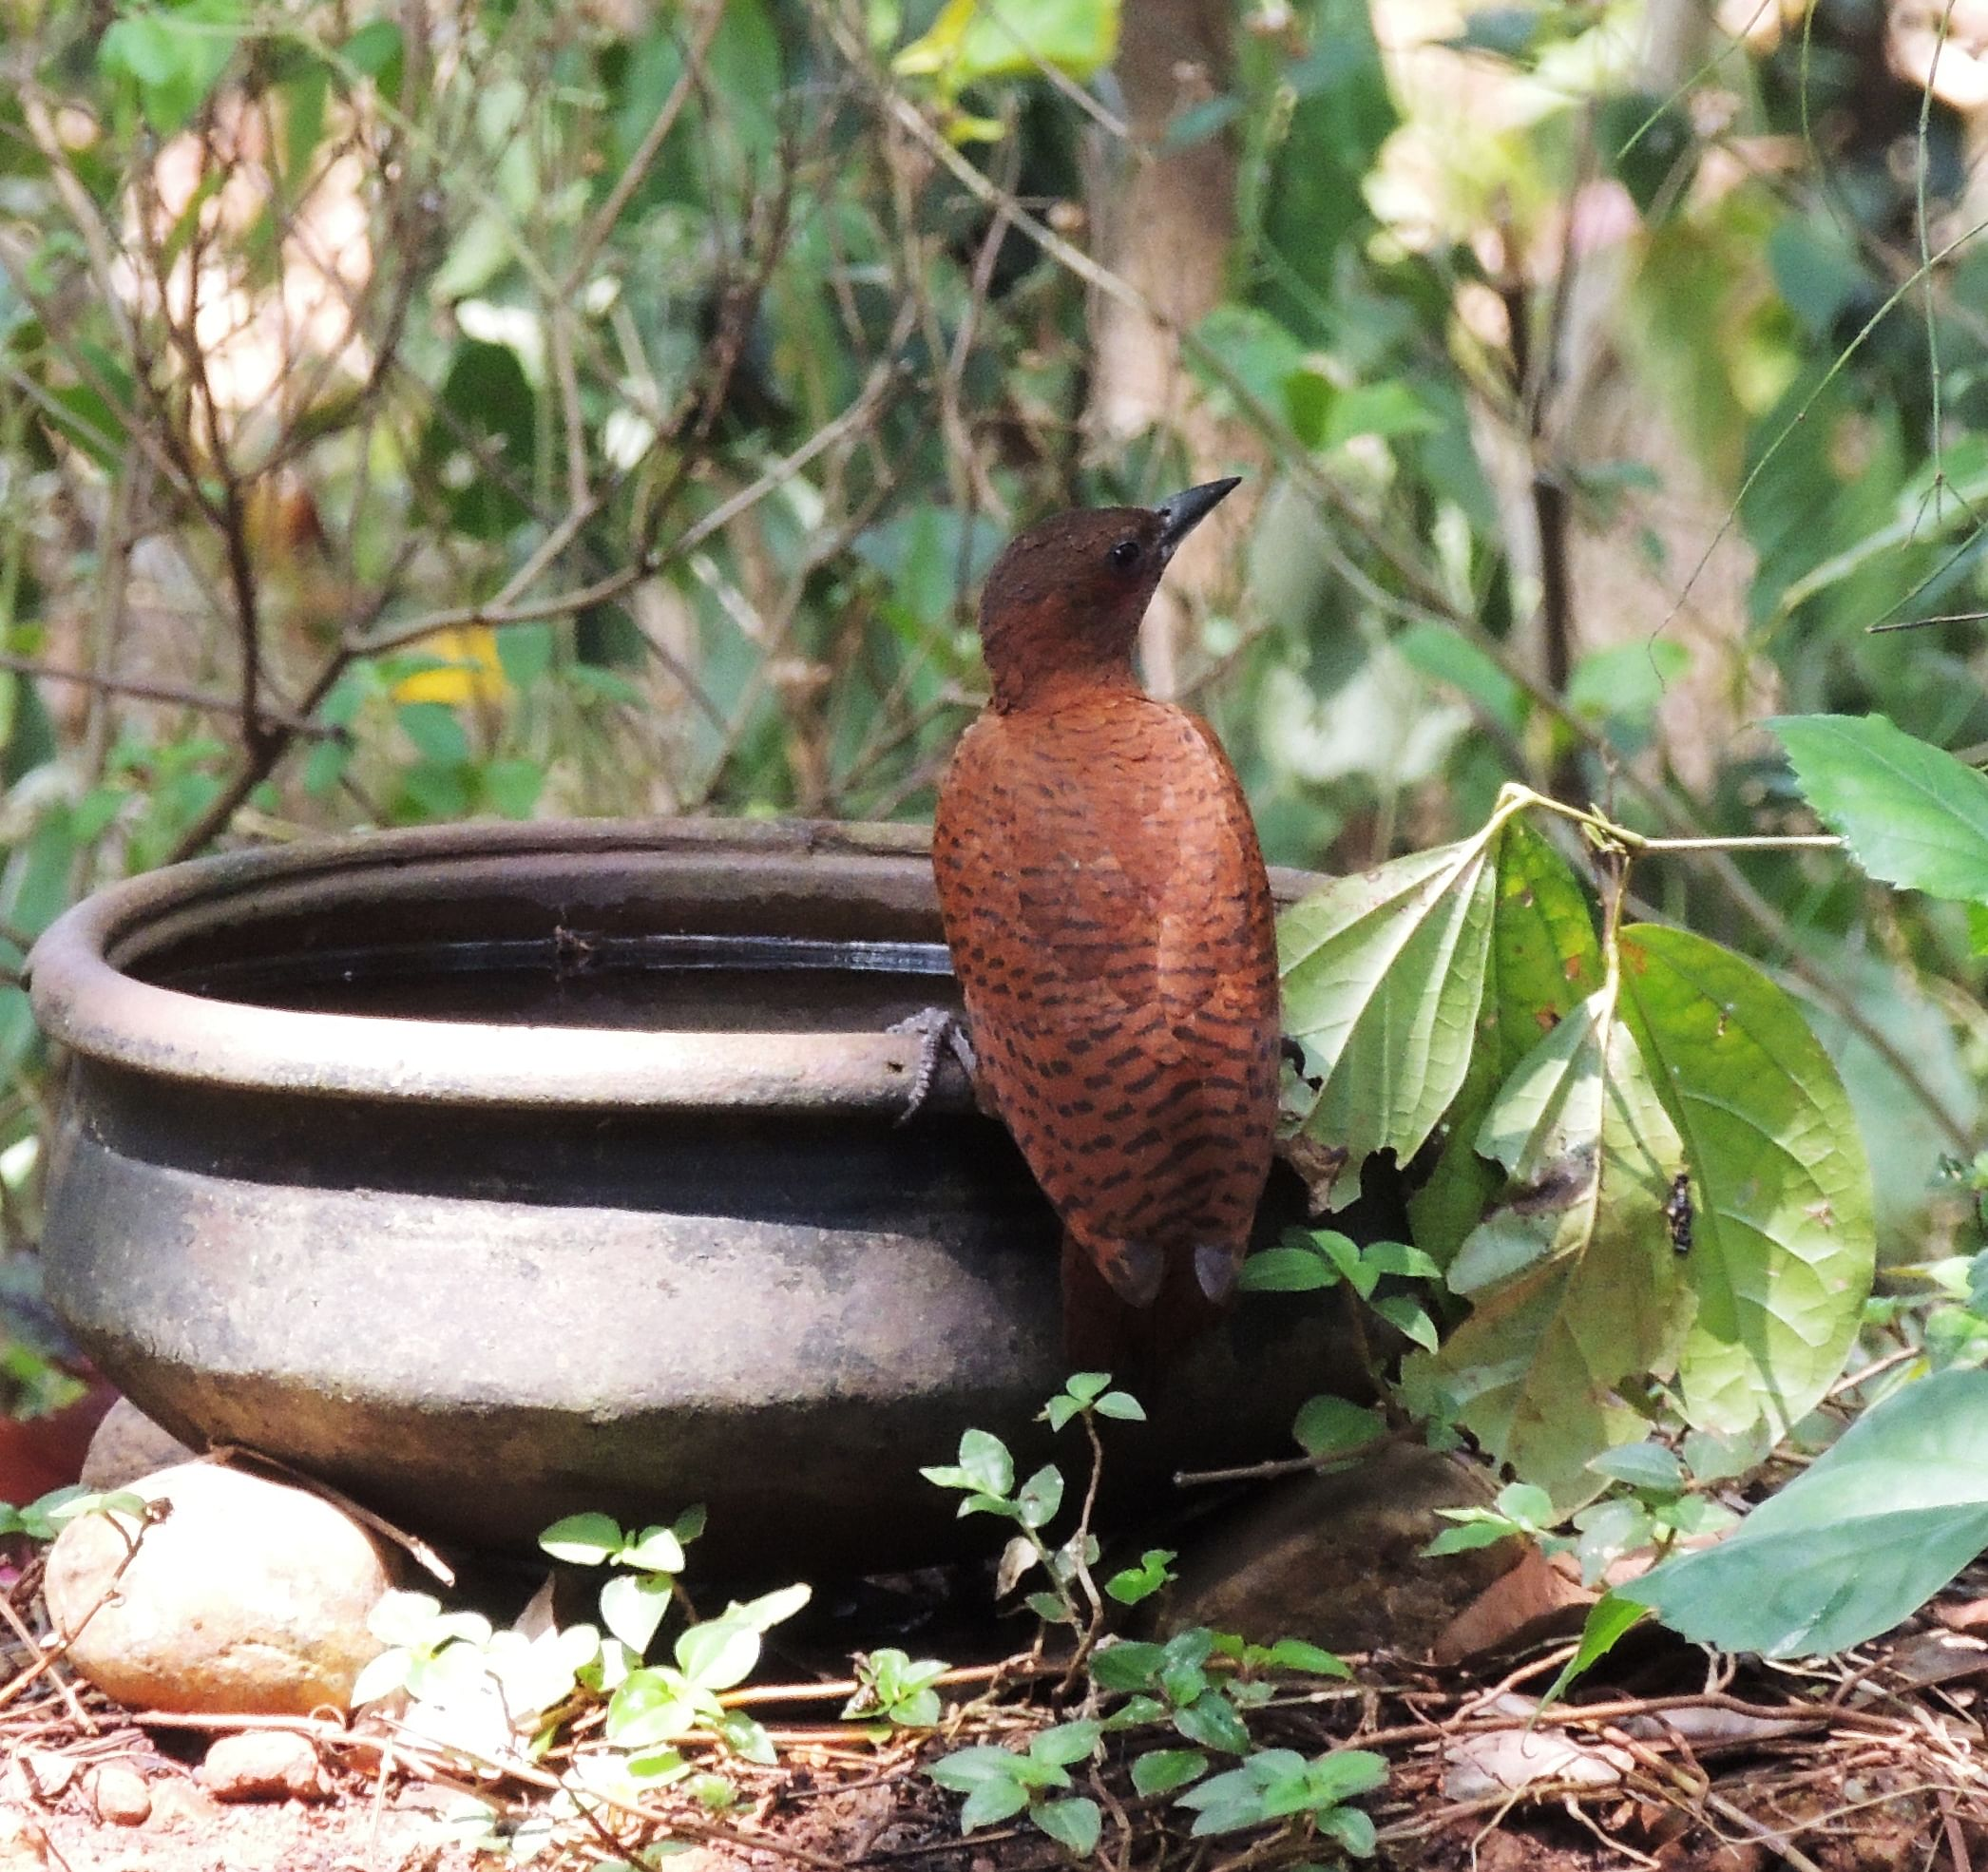 Water for birds in Hari and Asha's backyard forest